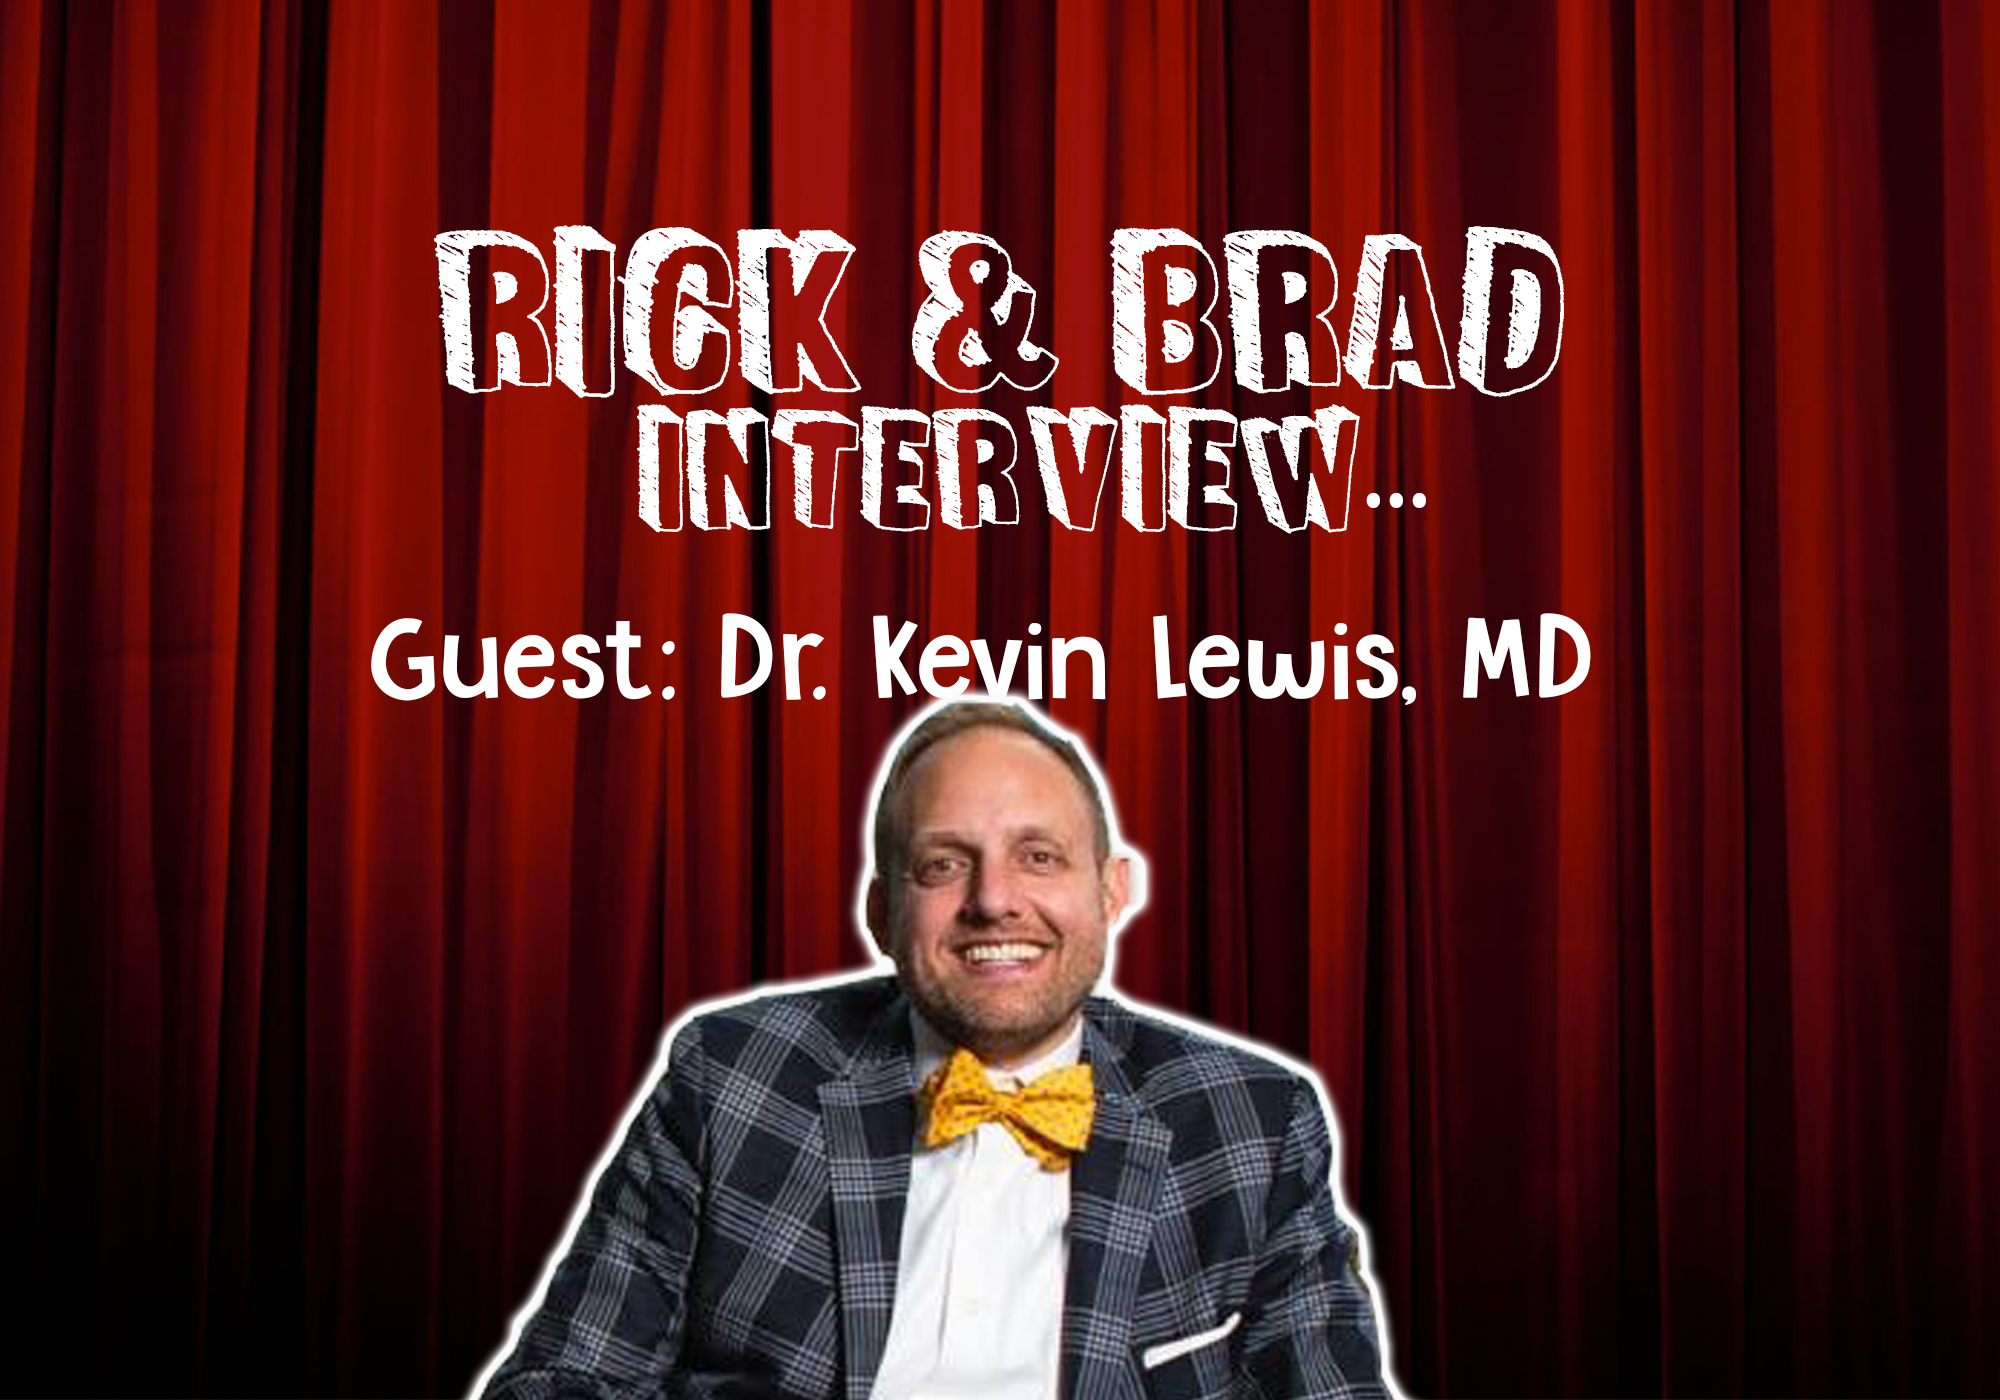 [PODCAST] Diets & Weight Loss Discussion with Dr. Lewis